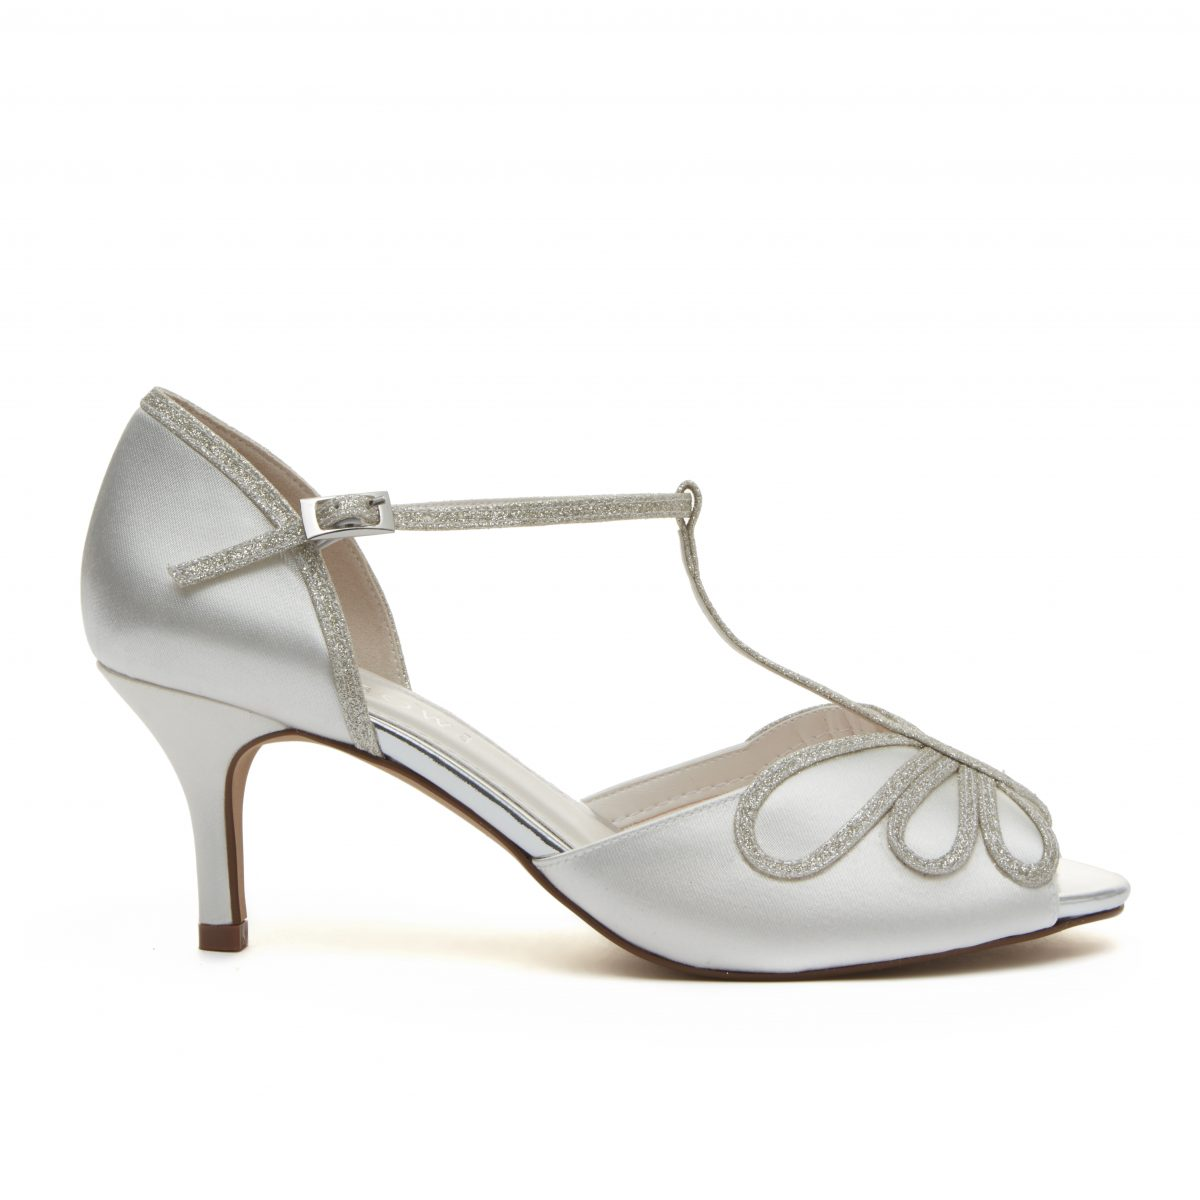 Rainbow Club Harlow - Peep Toe Satin/ Silver Shimmer Shoe 2